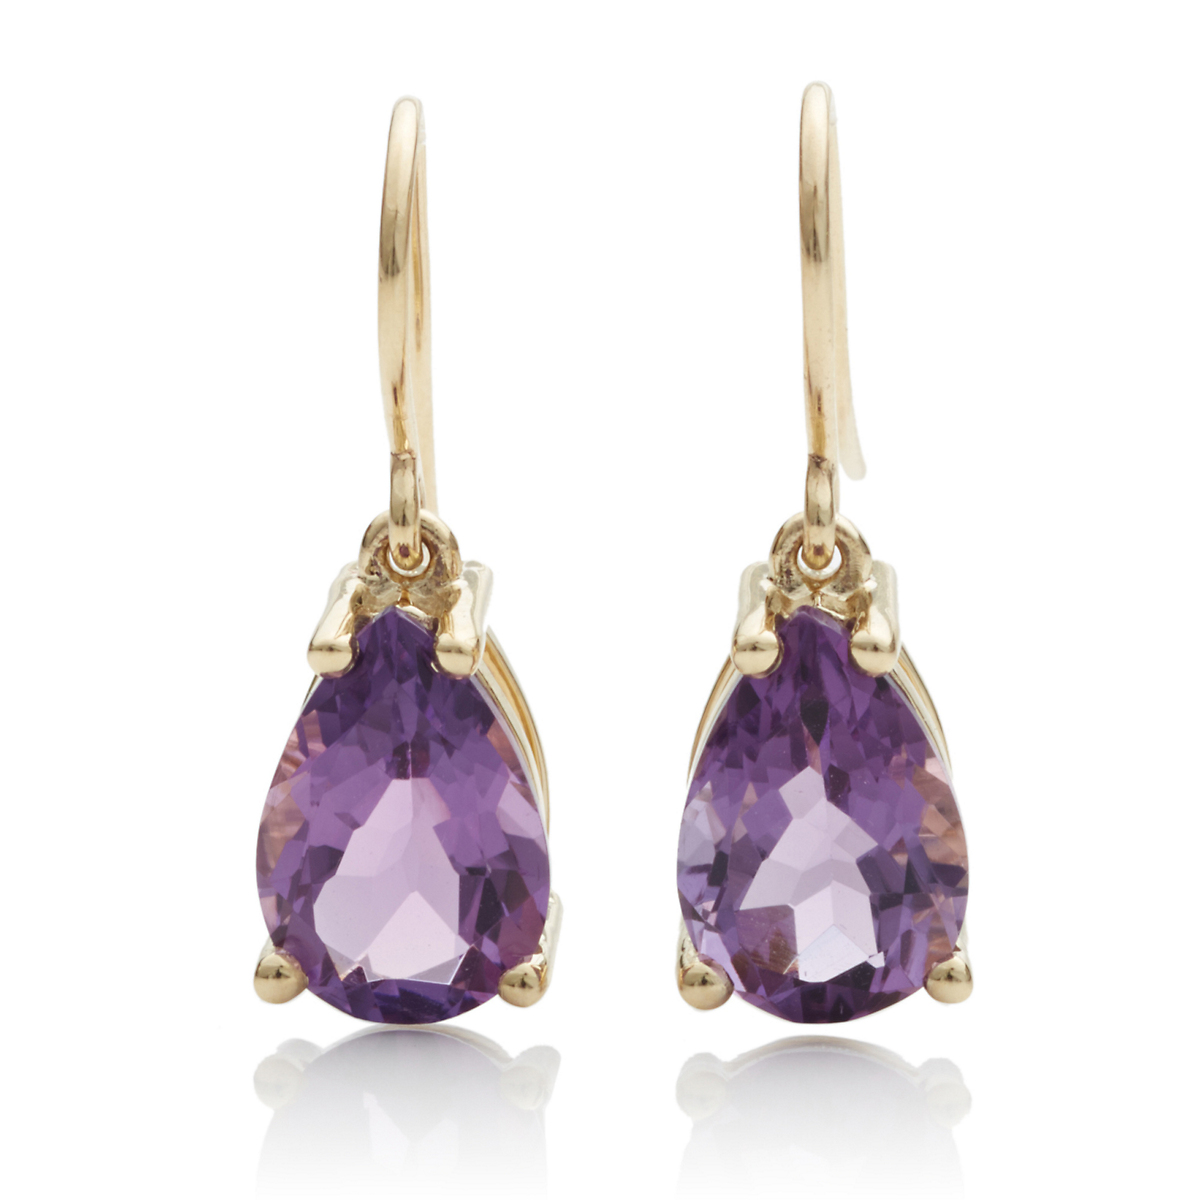 Gump's Faceted Gem Drop Earrings, Amethyst